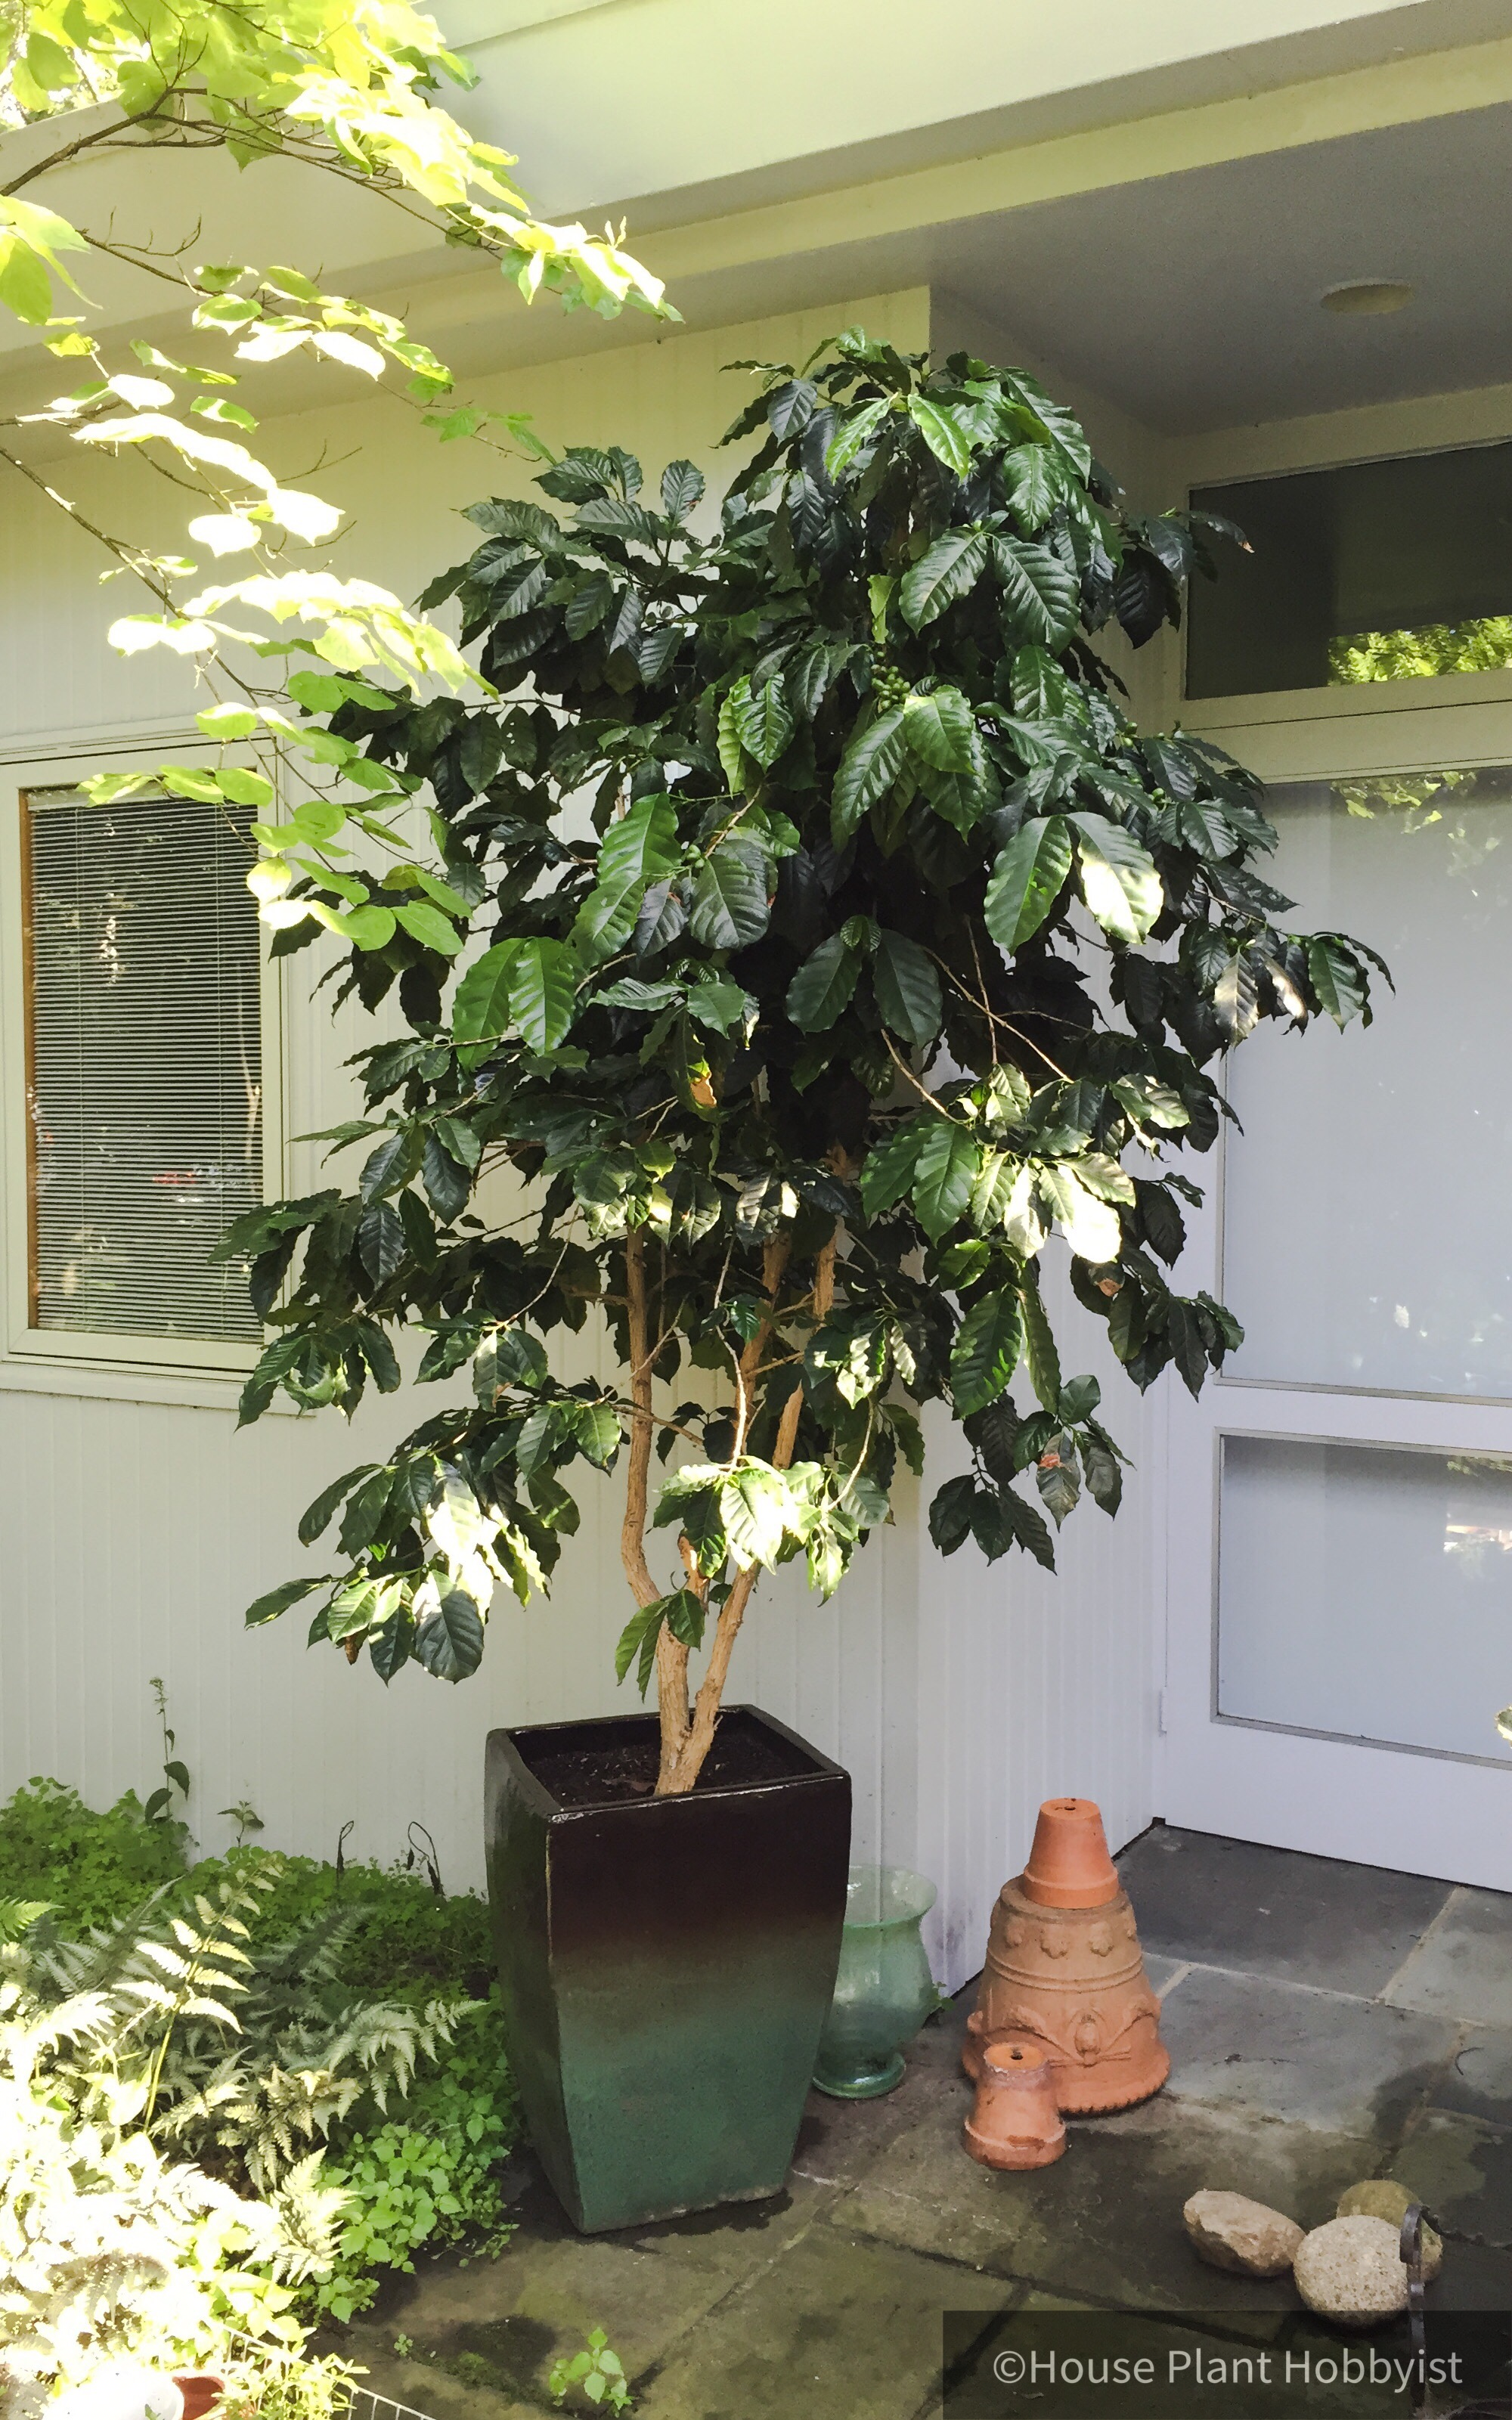 The oldest coffee tree in the family.